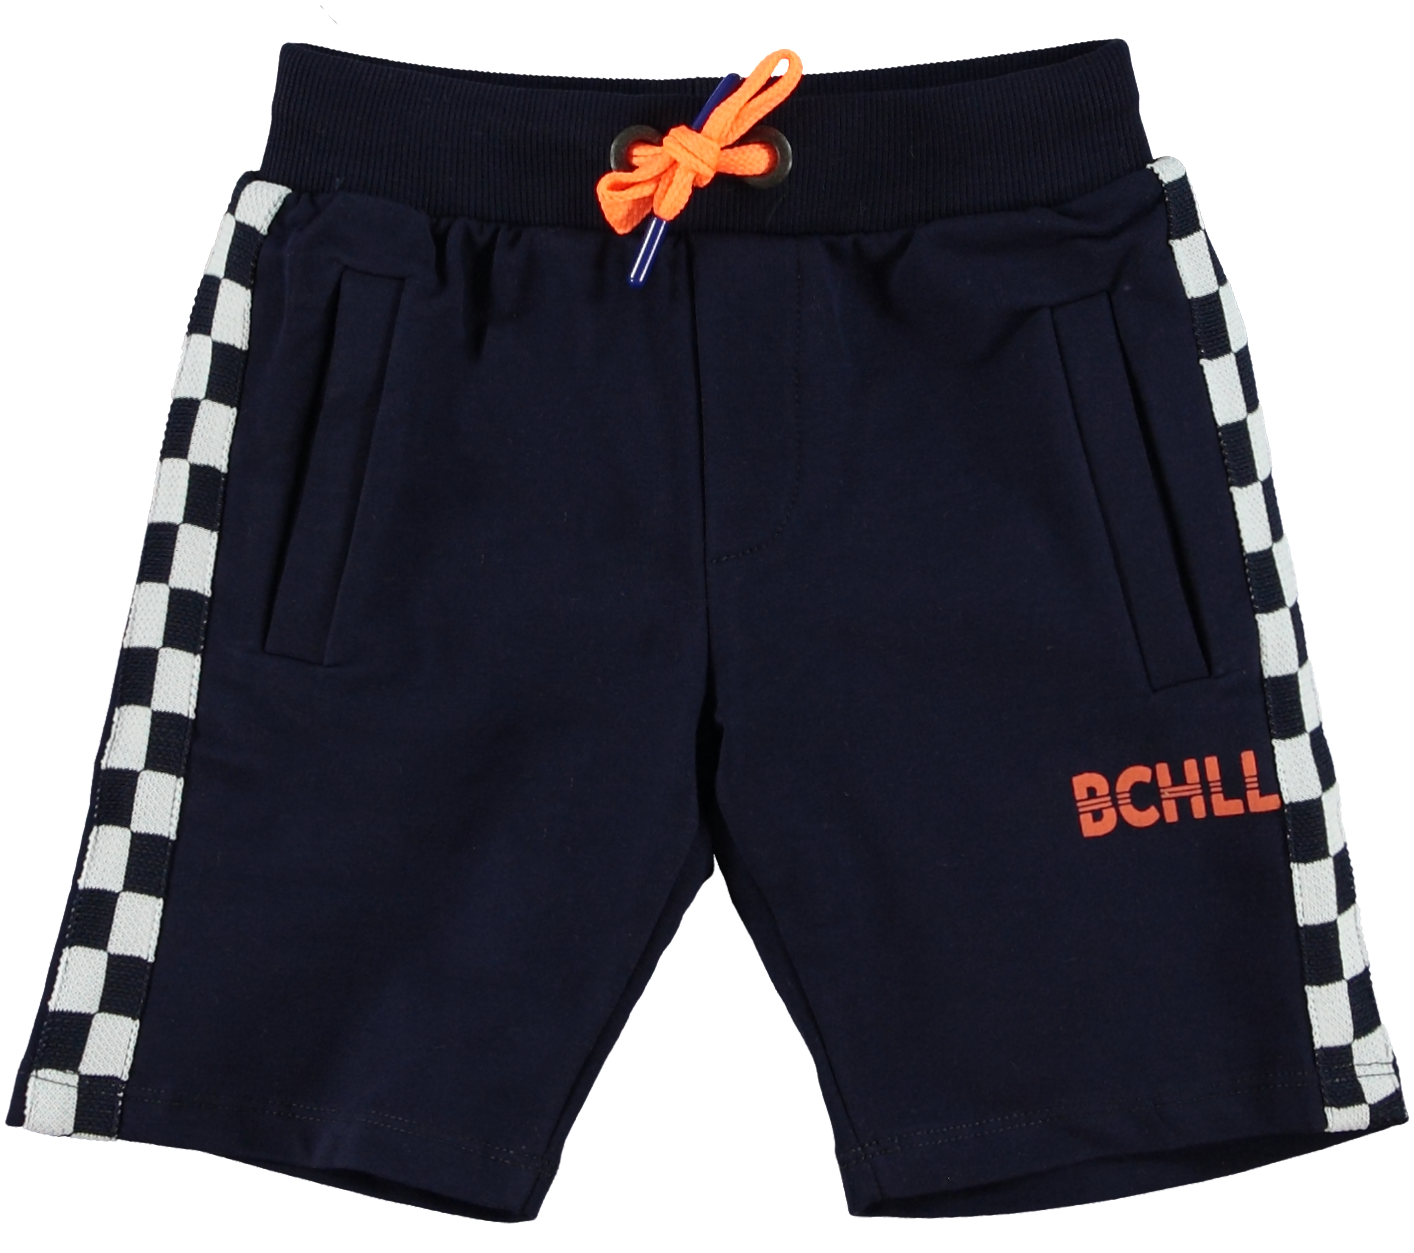 B-Chill Jongens Short Ruben Black-1